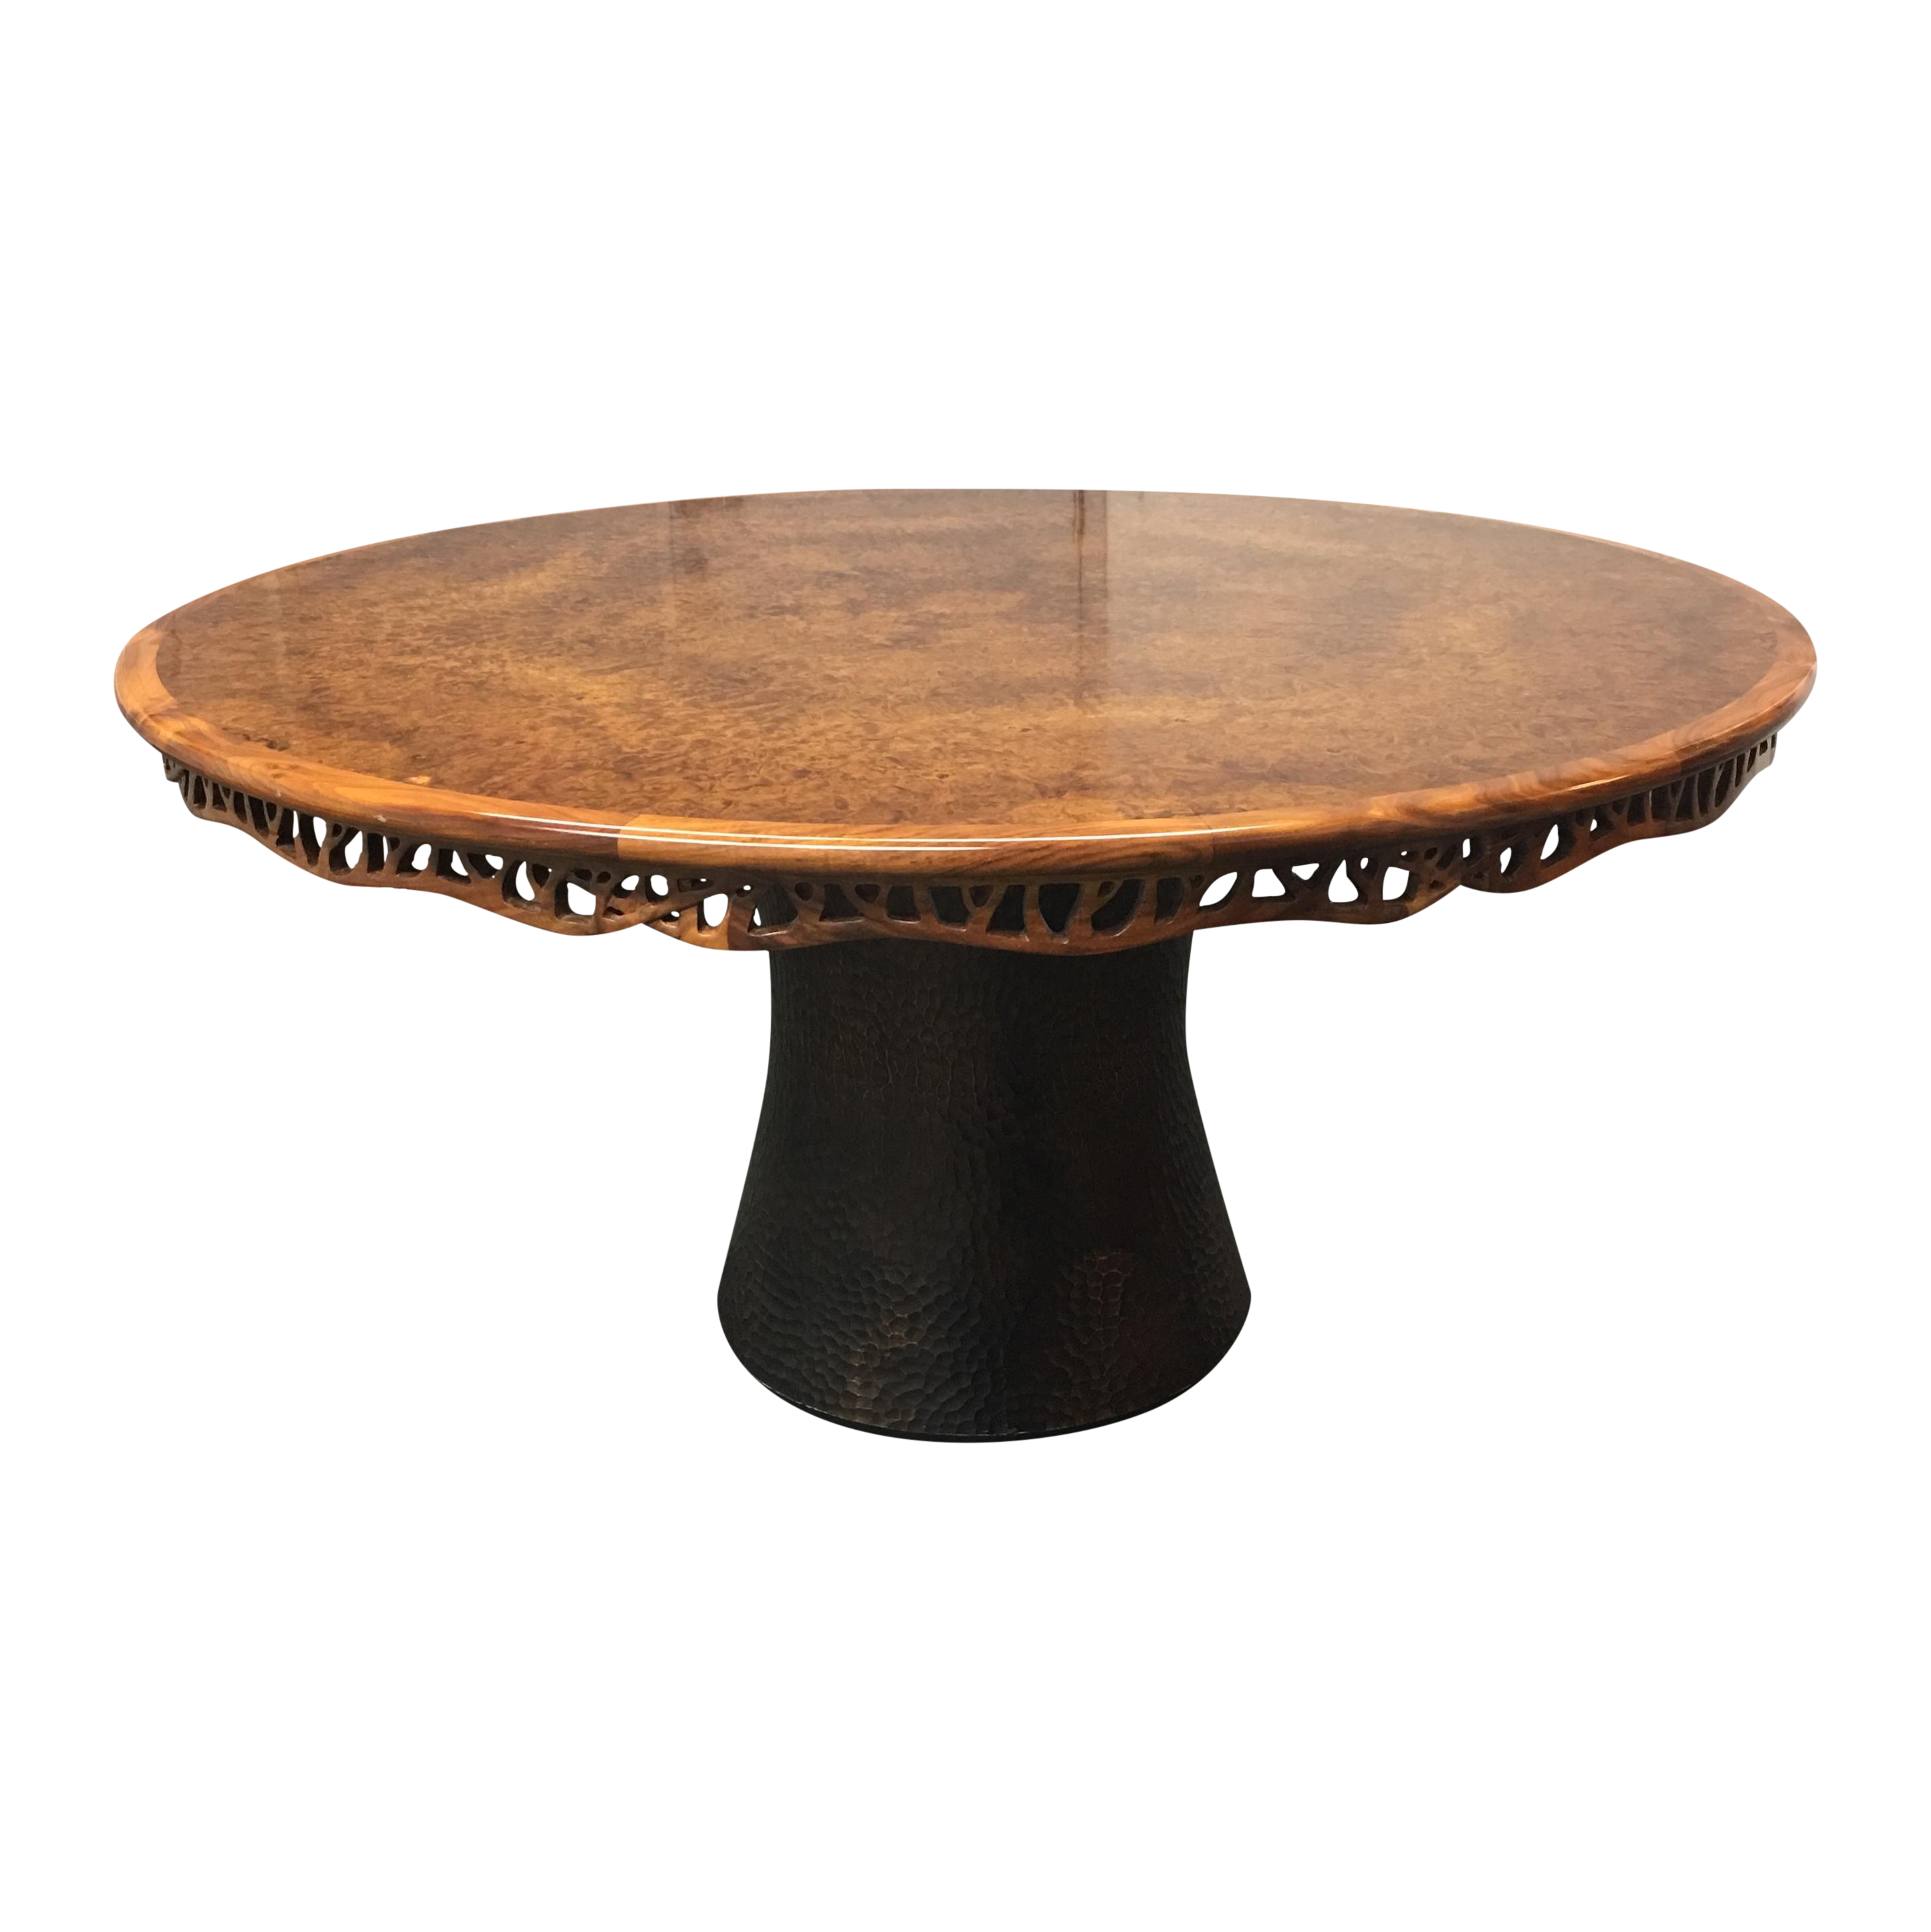 Dining Table Prices: New Martin Pierce Hedgerow Circular Dining Table. Original